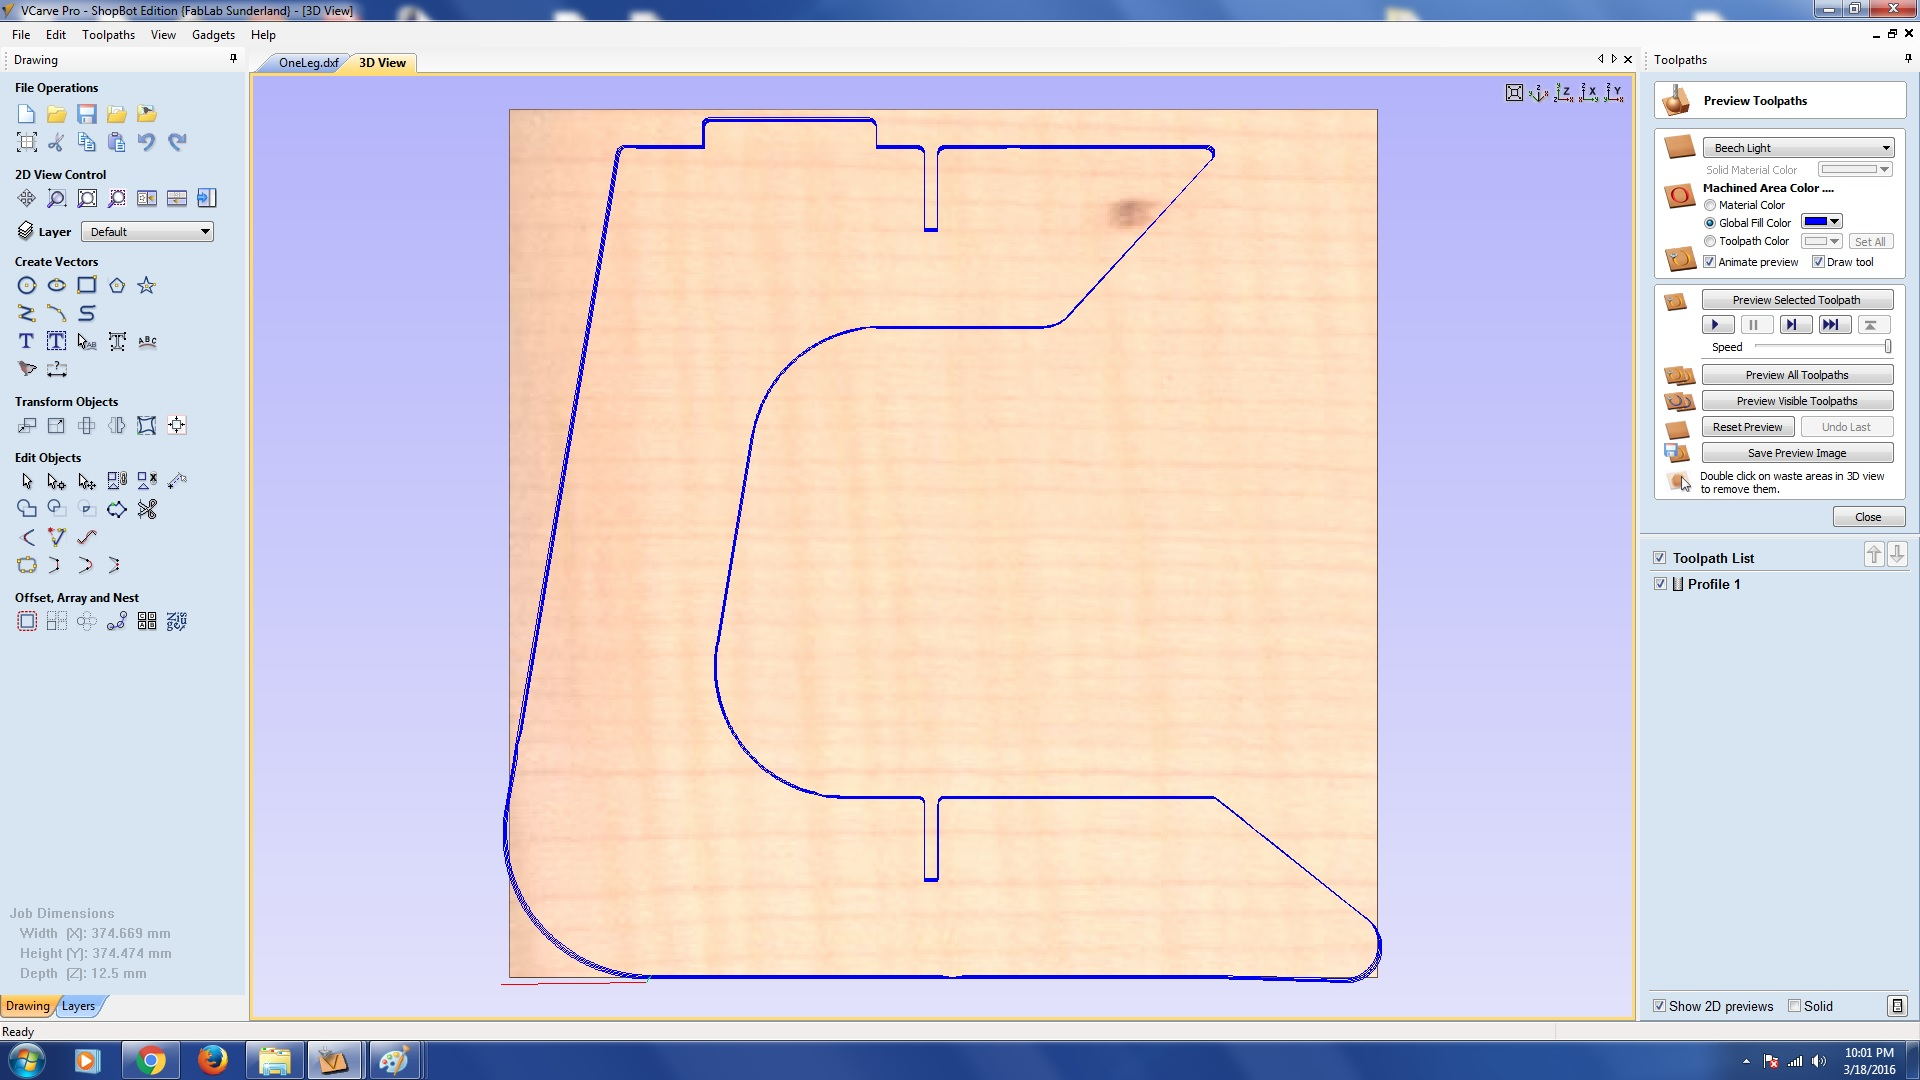 hight resolution of i input the following settings within the 2d profile toolpath menu to generate the appropriate toolpath for each of the constituent parts of my model